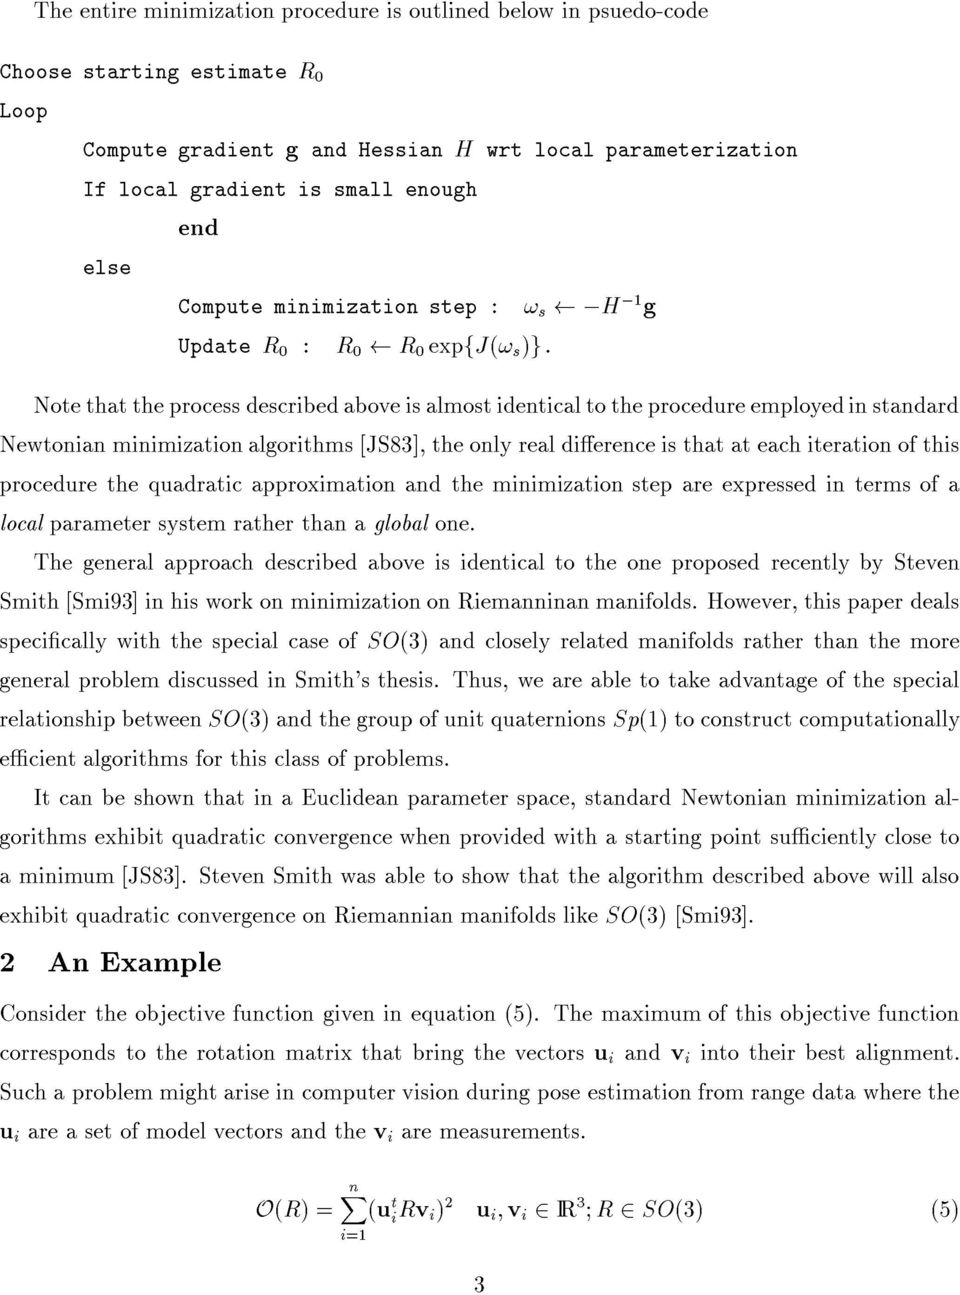 Note that the process described above isalmostidentical to the procedure employed in standard Newtonian minimization algorithms [JS83], the only real dierence is that at each iteration of this